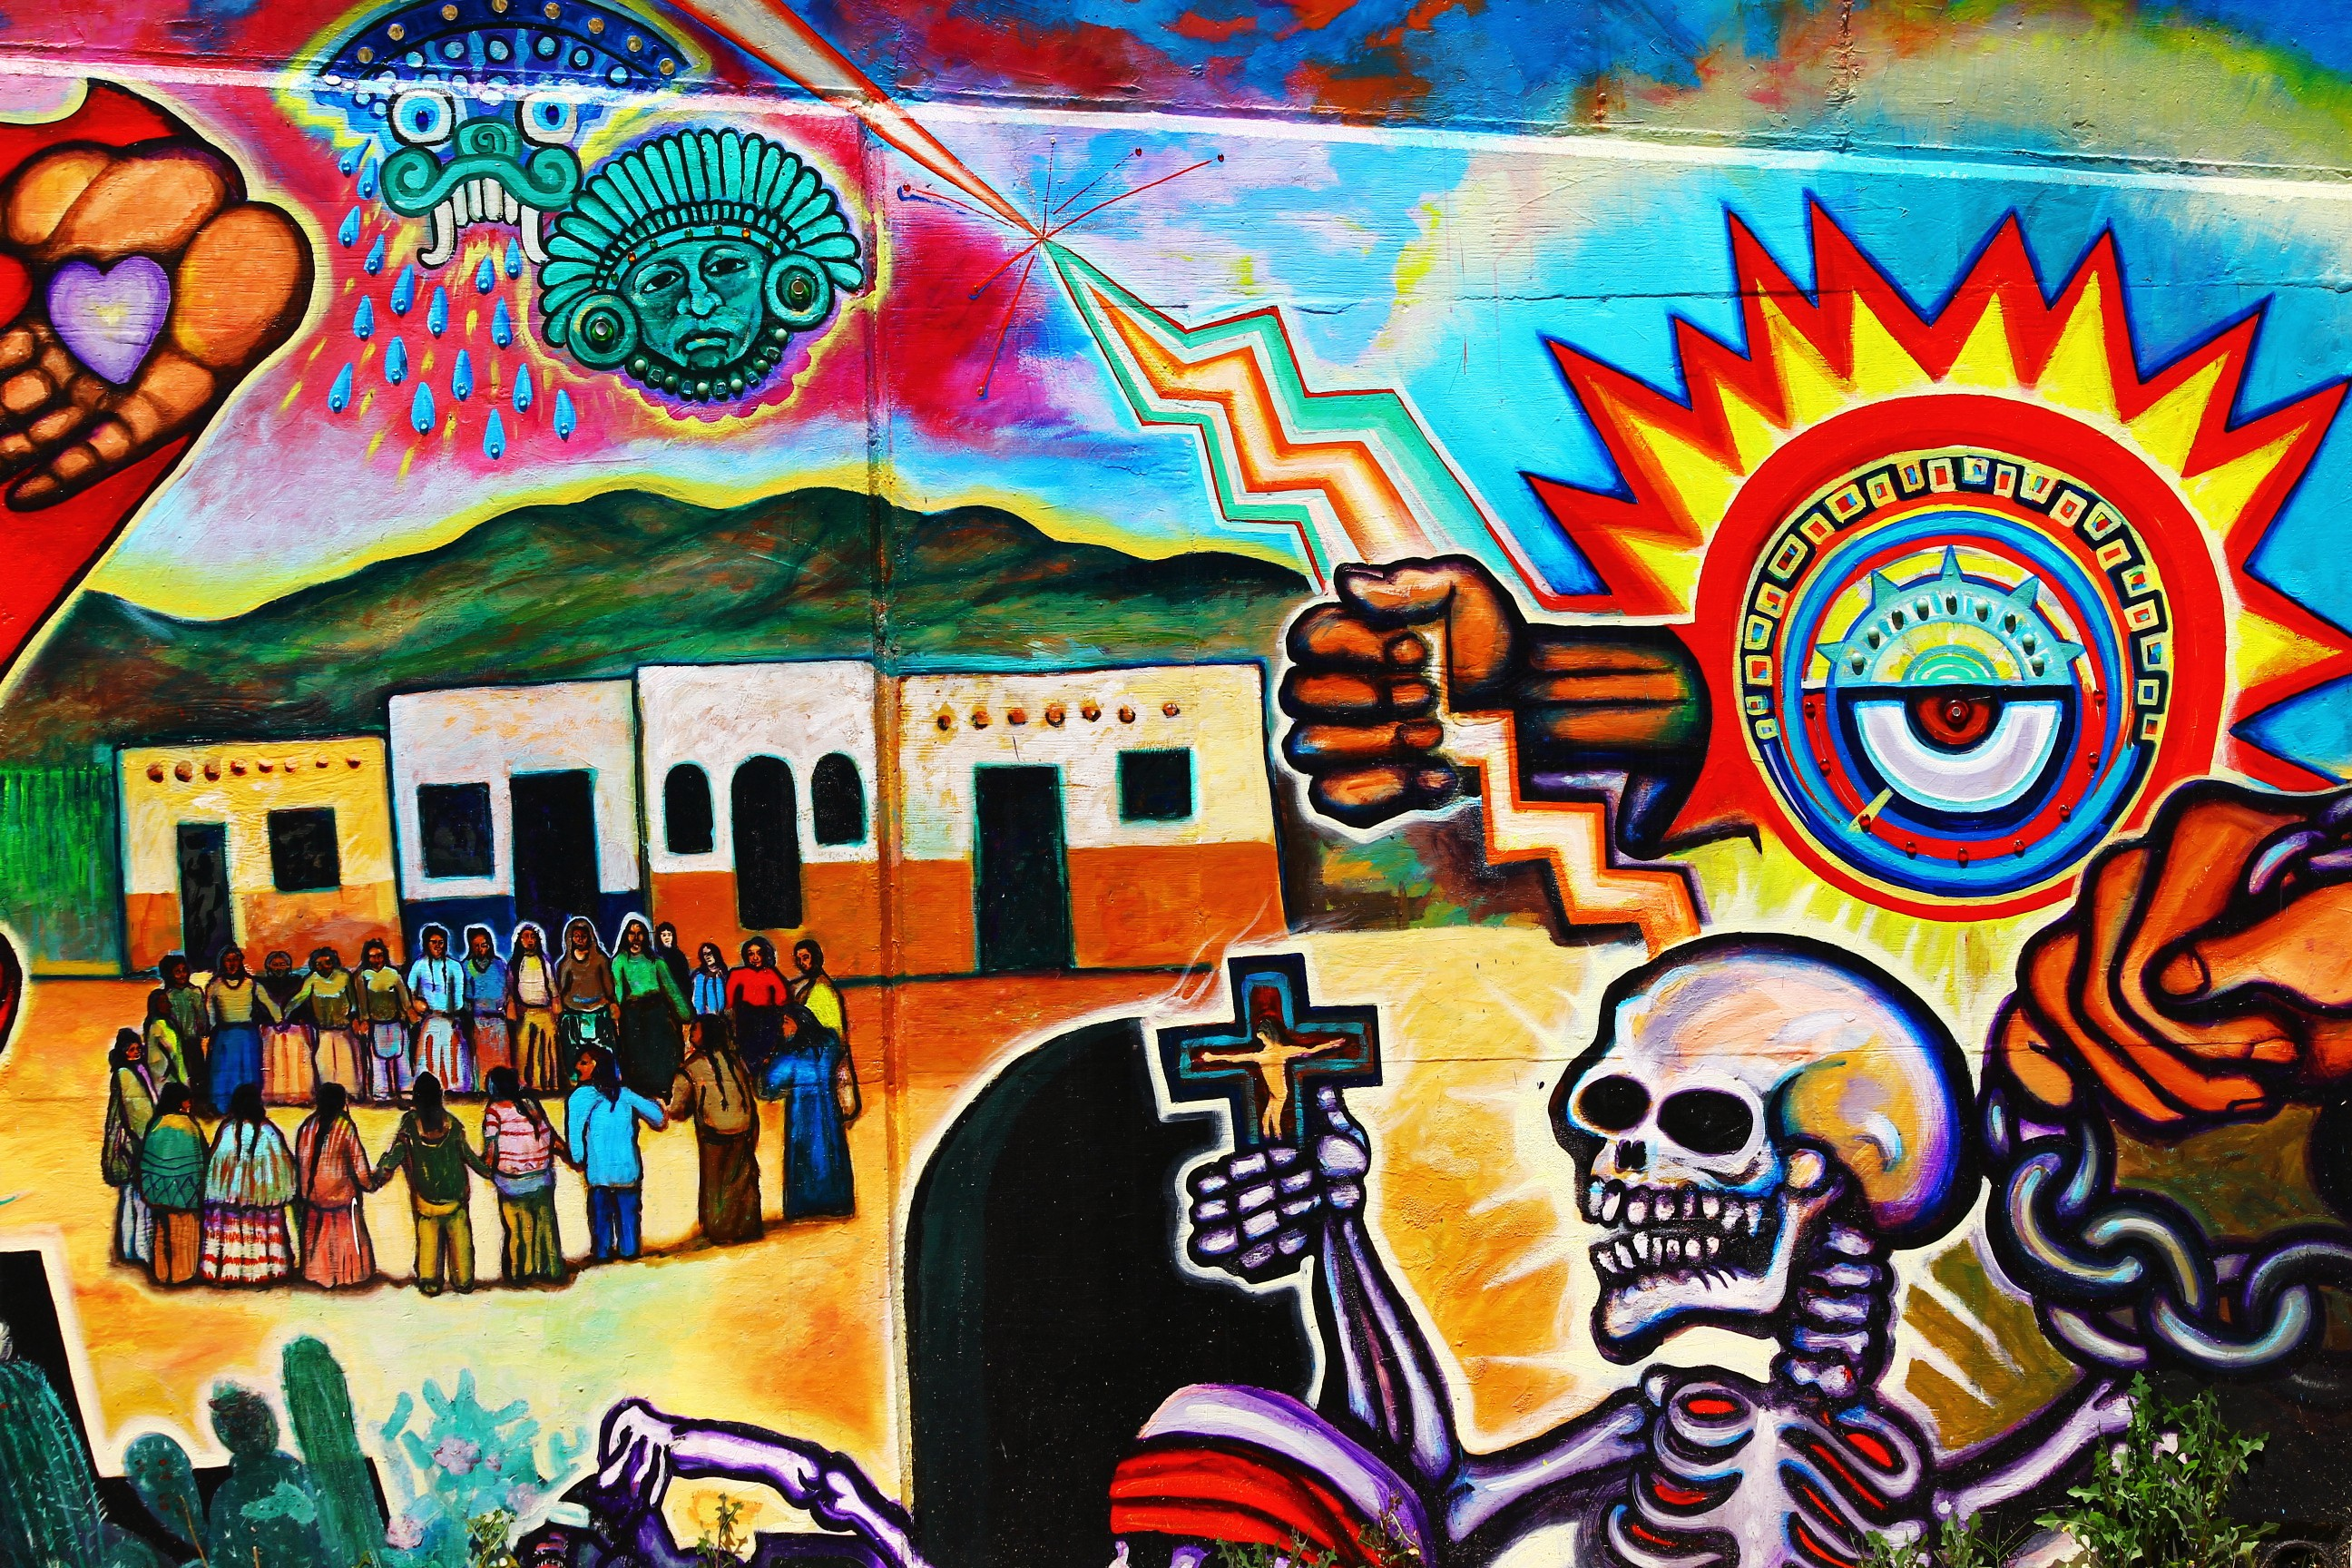 San diego street art chicano park murals via canon 550d for Chicano mural art